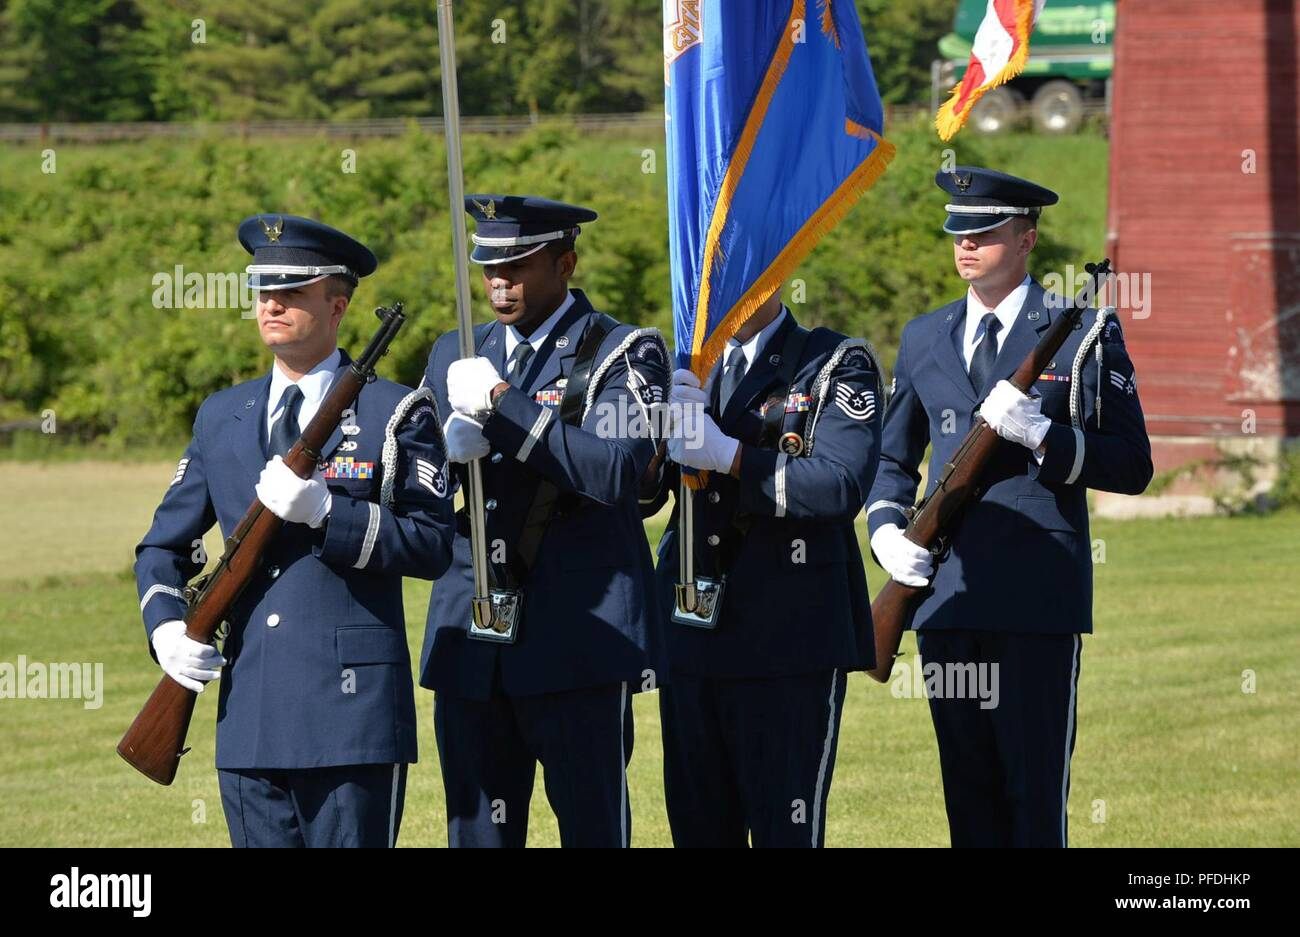 The New York Air National Guard 106th Rescue Wing honor guard prepare to post the colors at the 40th Memorial Anniversary of Jolly 85 at VFW Post 1505, Keeseville, N.Y., June 13, 2018. On June 13, 1978, an HH-3E Jolly Green Giant Helicopter from the 102nd Aerospace Rescue and Recovery Group now the 106th Rescue Wing in West Hampton Beach N.Y., was returning to base after training at Plattsburgh Air Force Base, N.Y. After encountering inclement weather, the seven members turned back to Plattsburgh, but with low visibility, the HH-3E hit the Trembleau Mountain just below its peak. - Stock Image